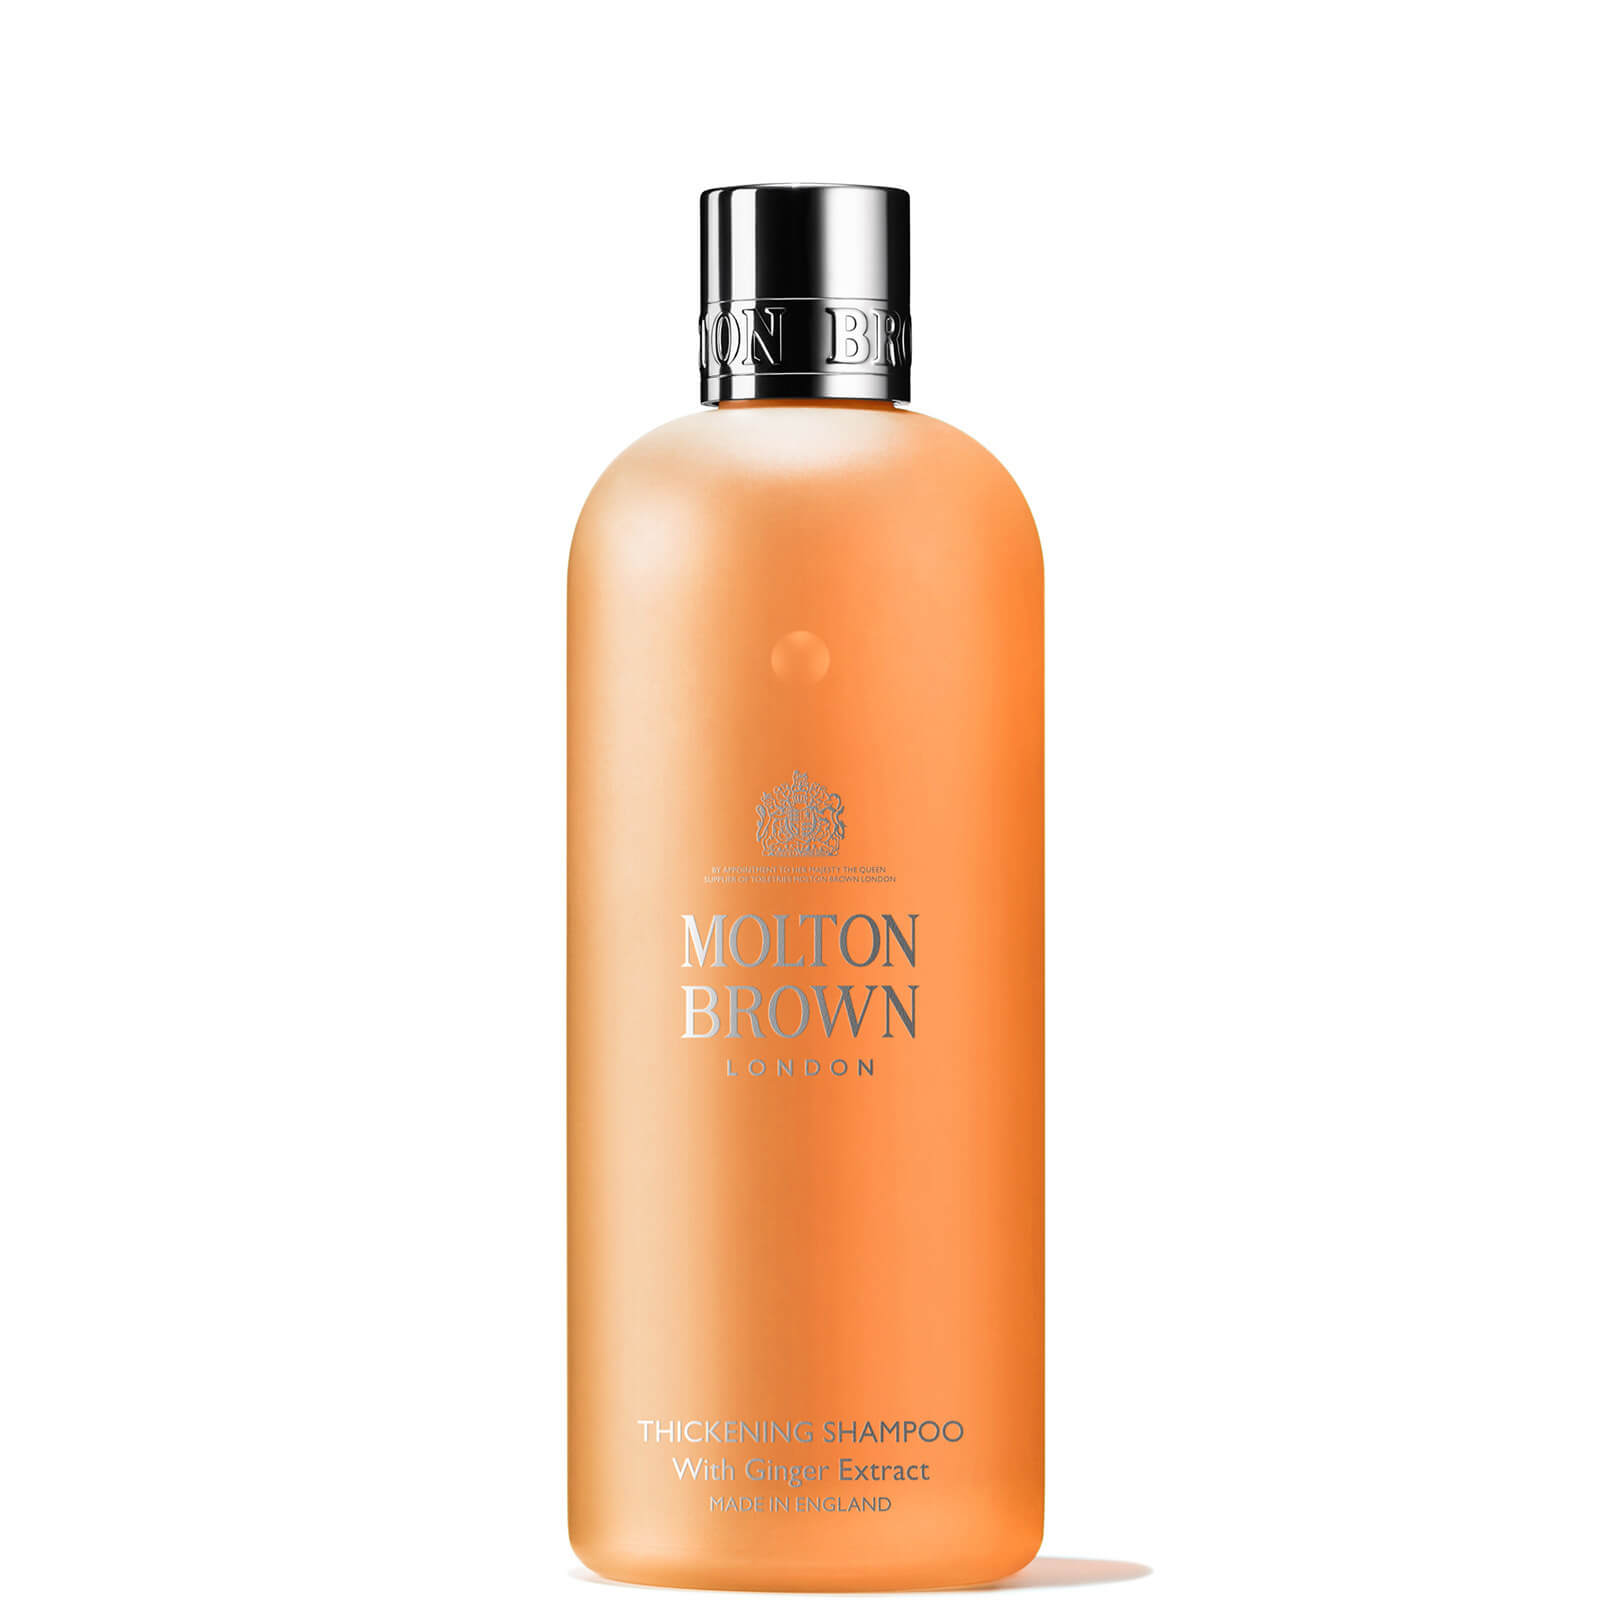 Molton Brown Thickening Shampoo With Ginger Extract Lookfantastic